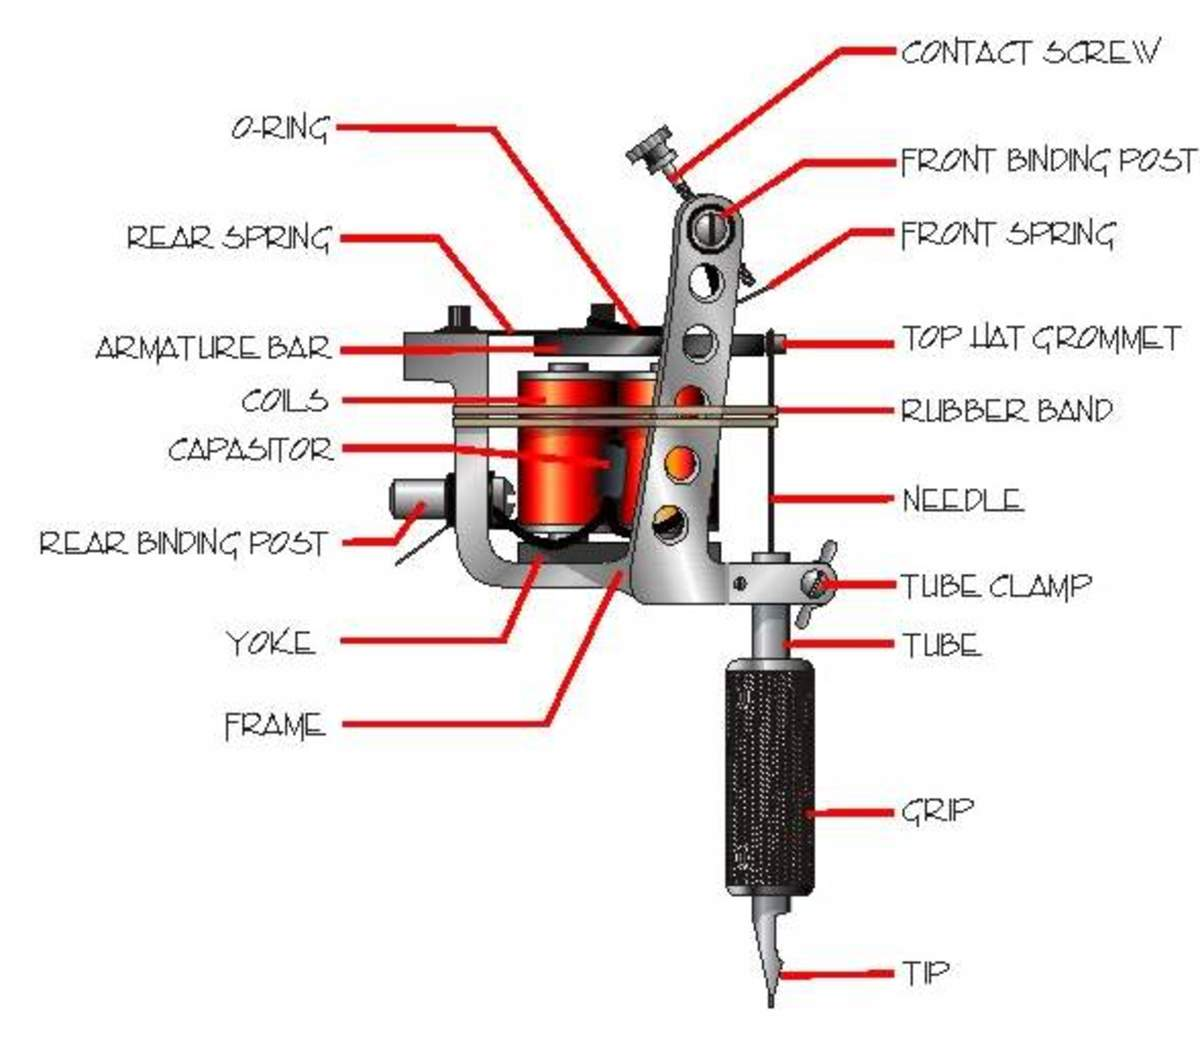 Tattoo Machine Wiring Diagram:  TatRing,Design